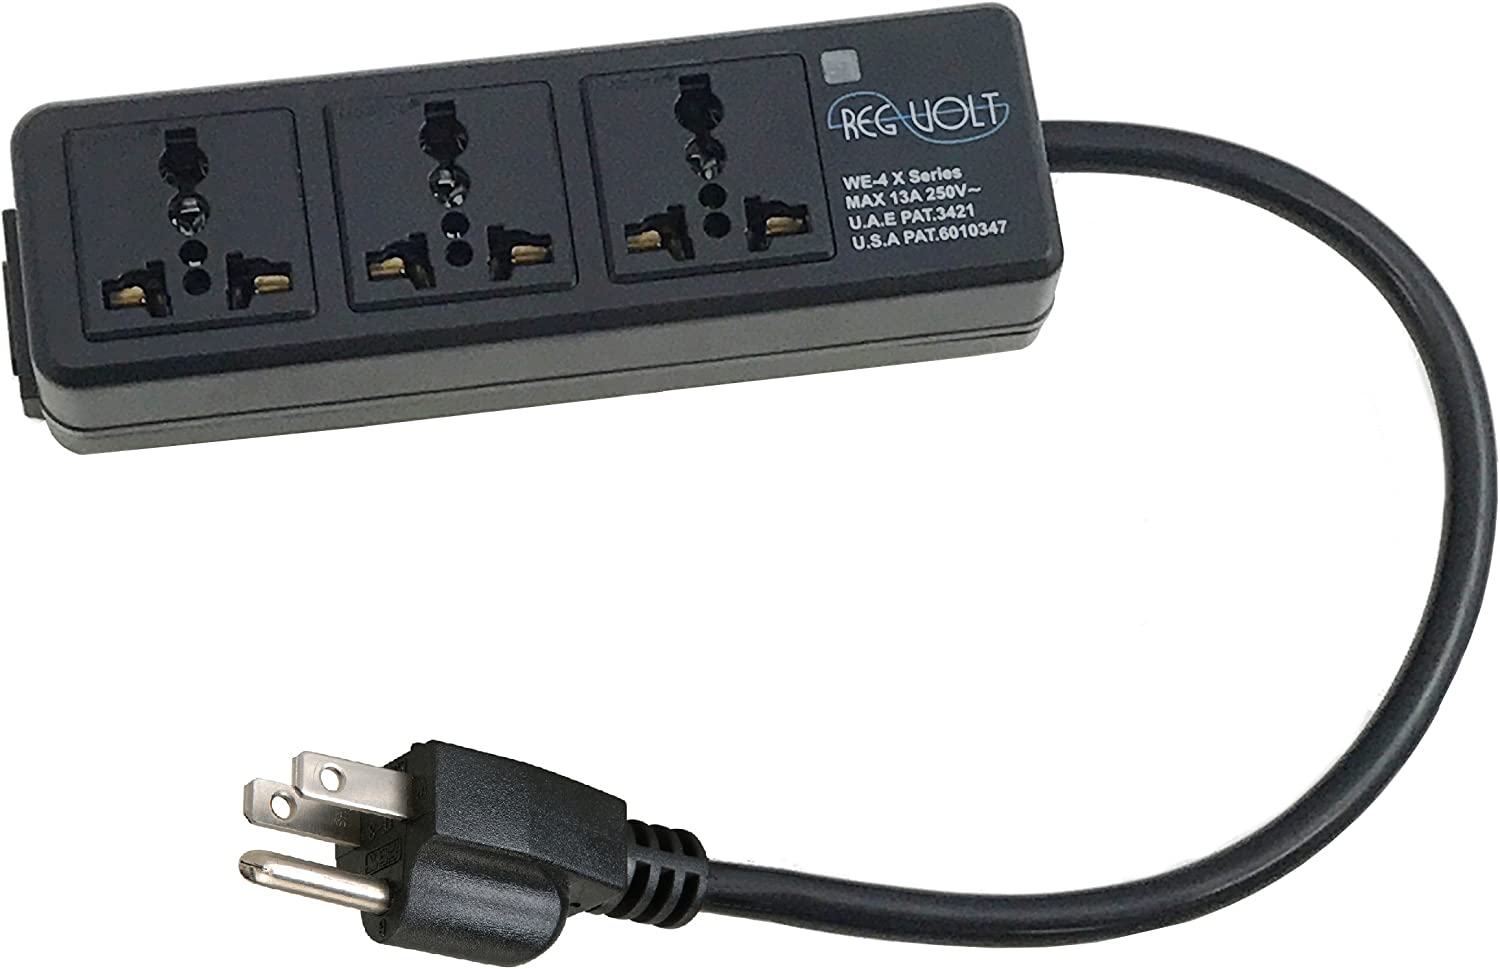 Regvolt Universal 3-outlet Power Strip for 110v-250v Worldwide World Wide Travel with Surge 13 Amps (USA Cord - 3 Outlet)